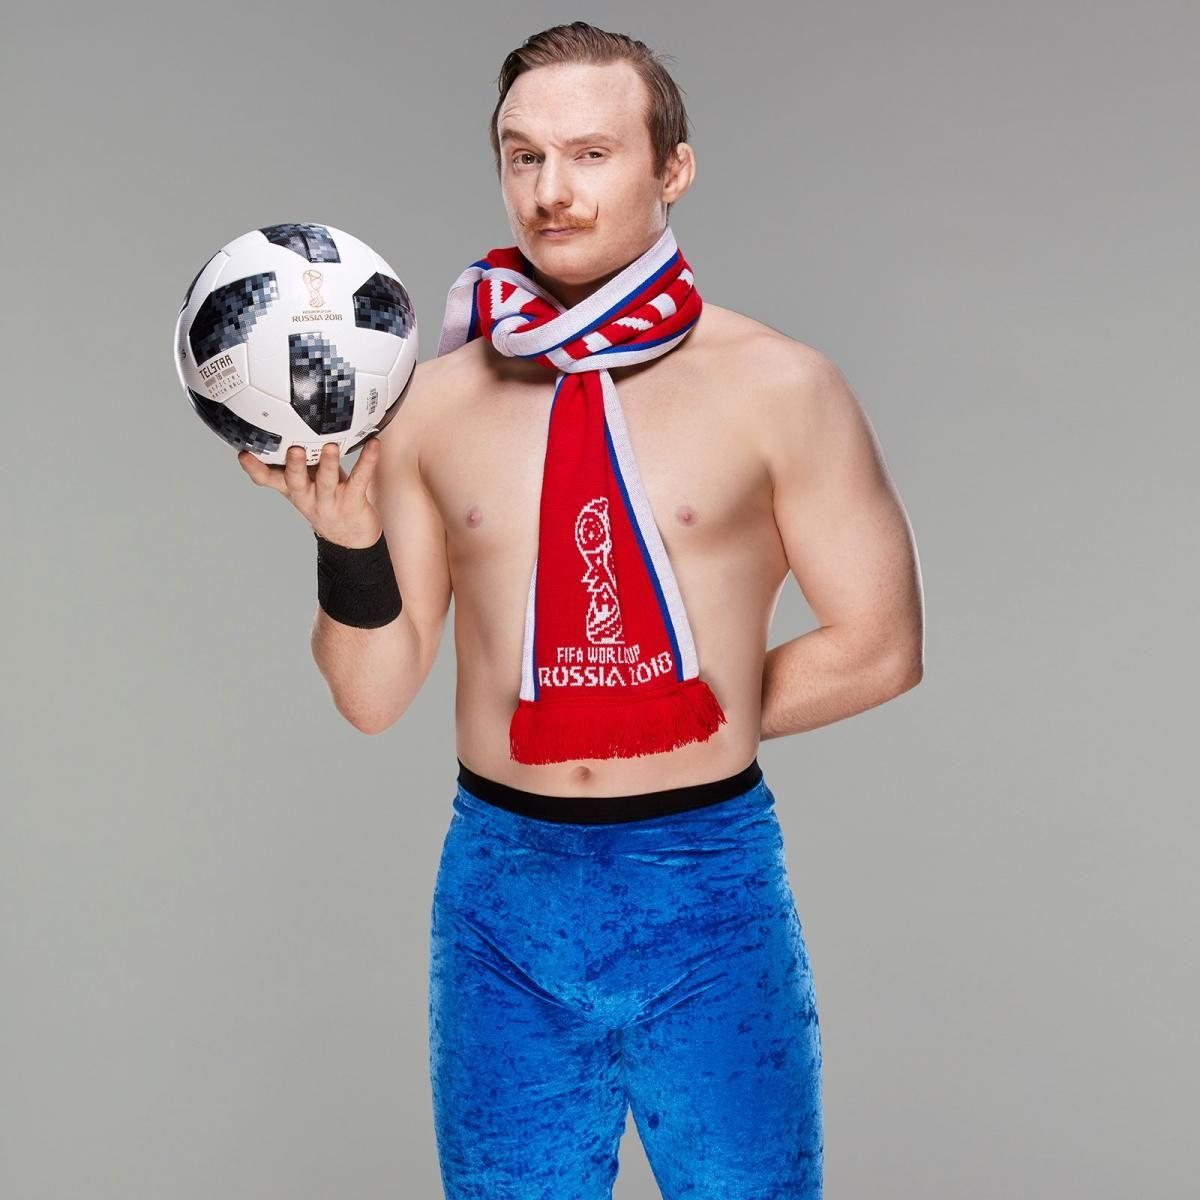 Photos: Superstars align for the World Cup | Superstar ...